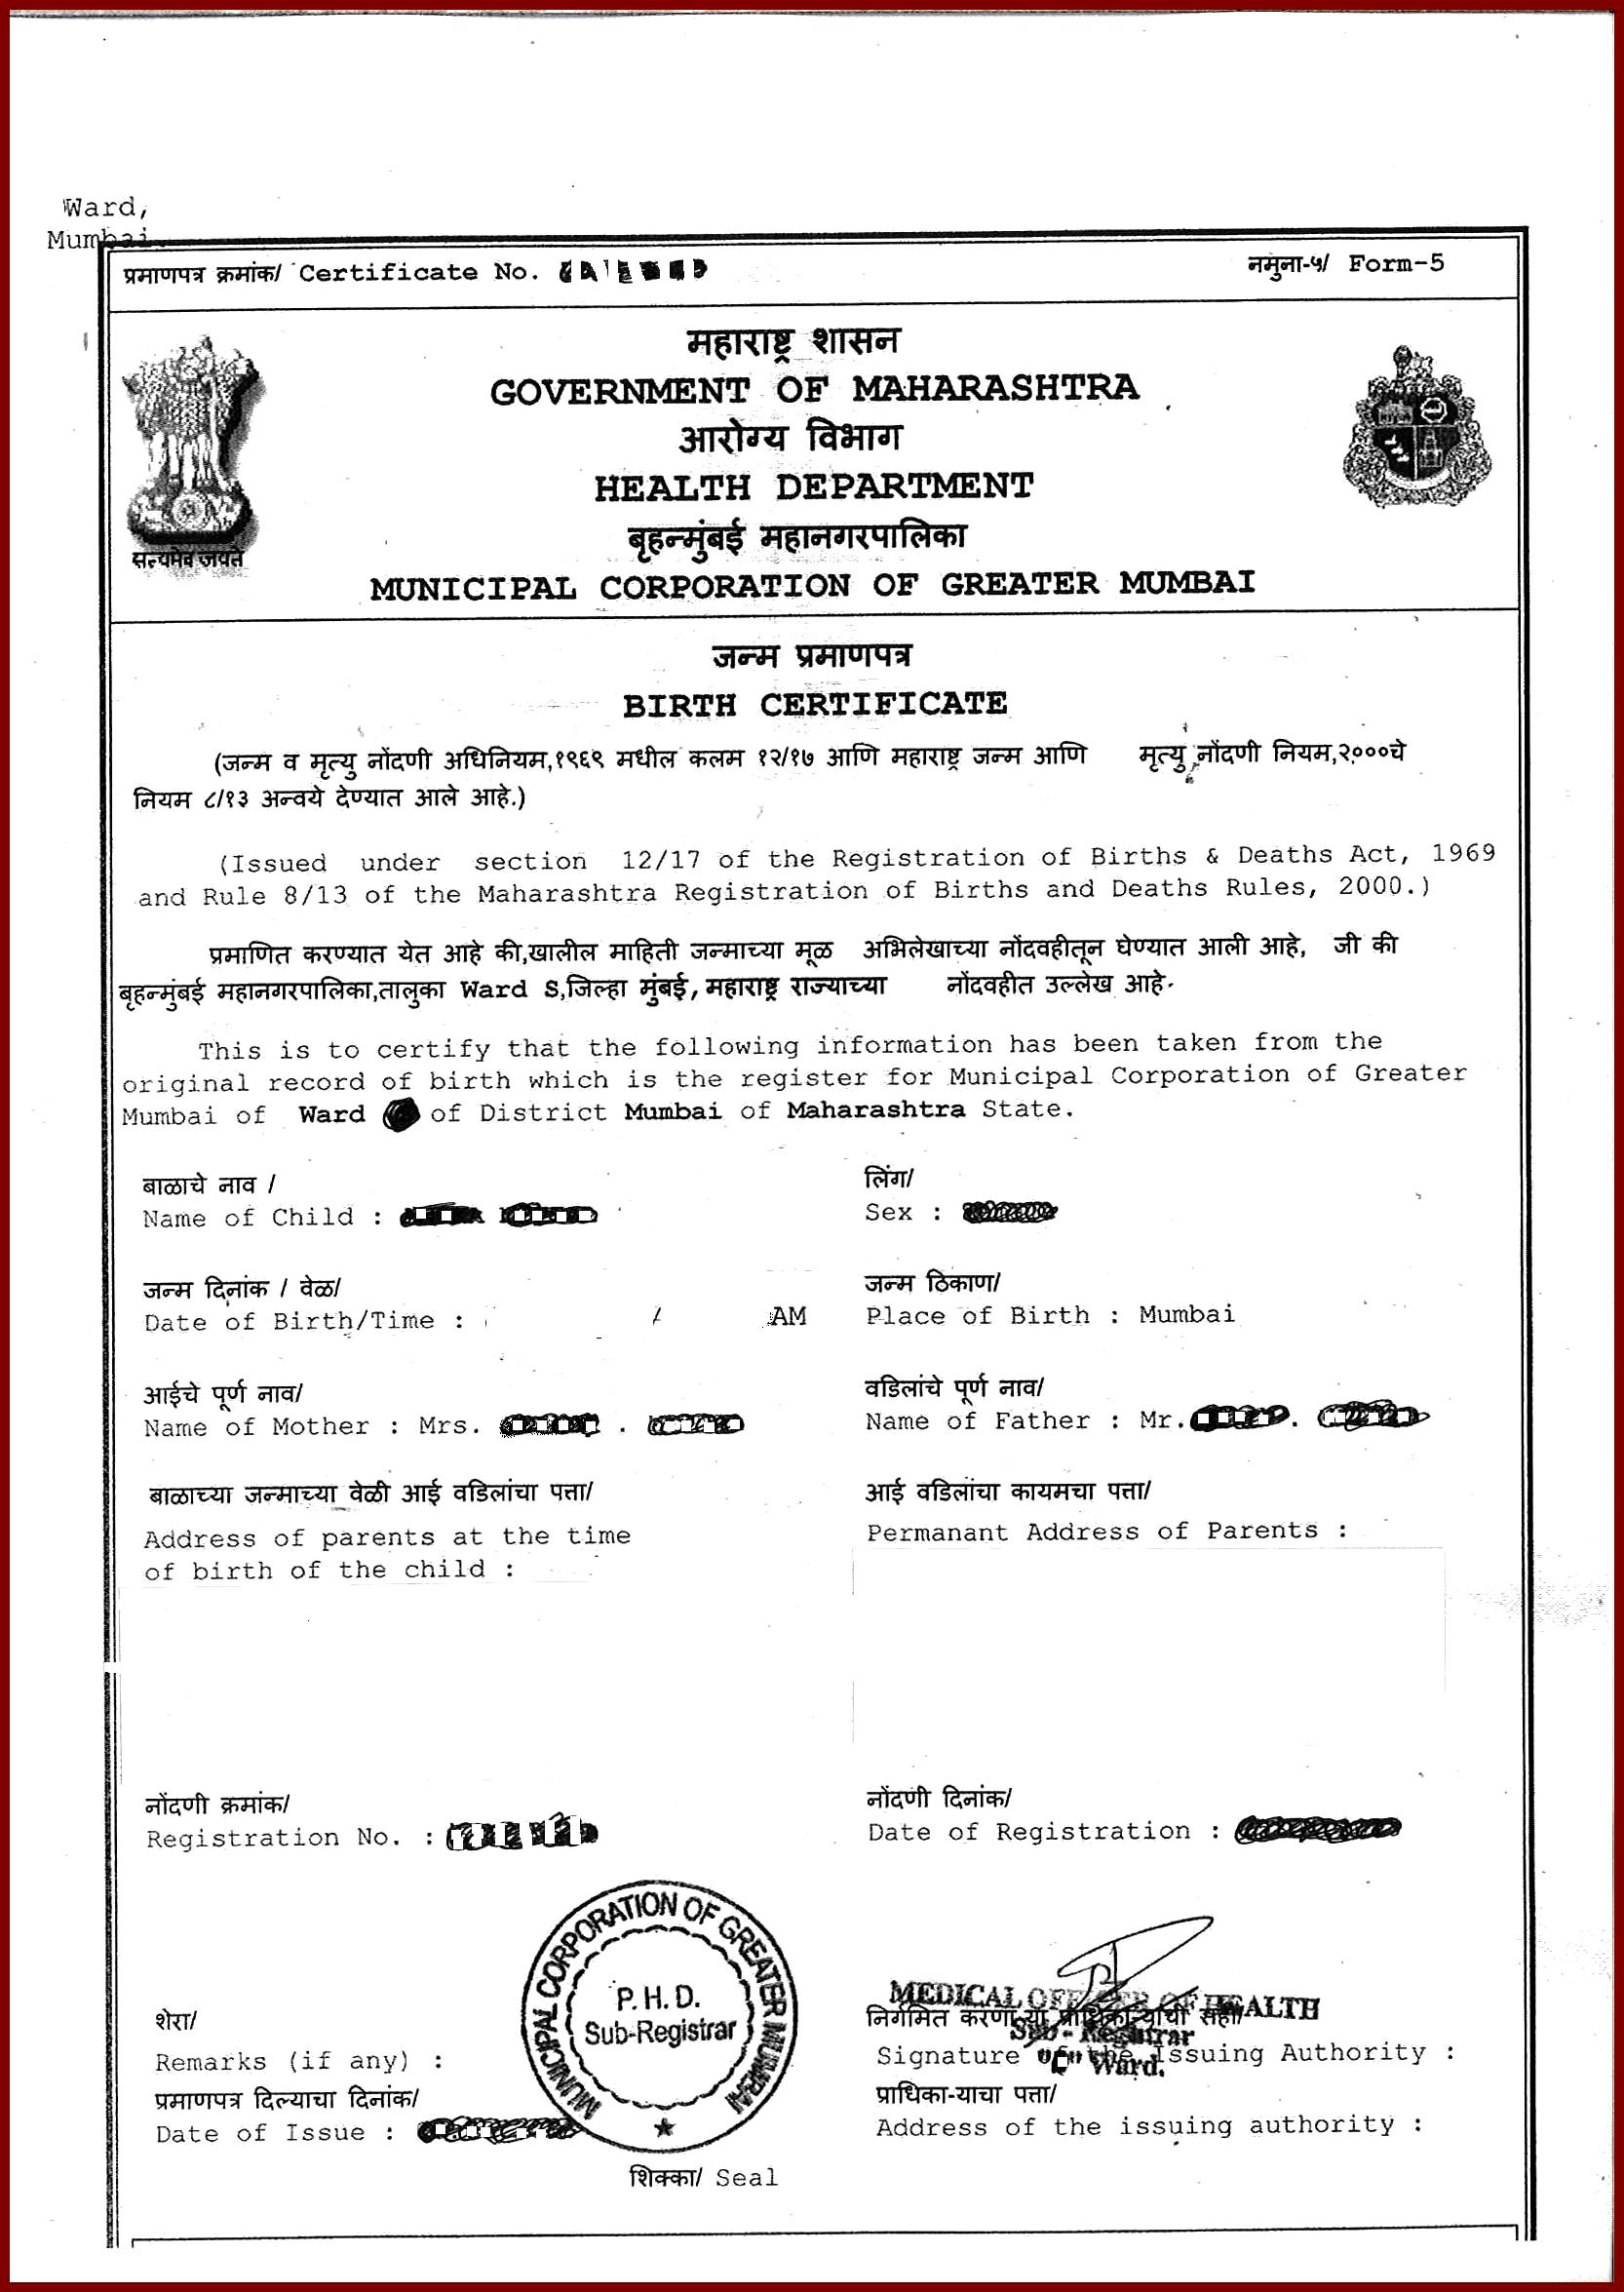 Best 25 birth certificate online application ideas on pinterest best 25 birth certificate online application ideas on pinterest marriage license application apply for marriage certificate and copy of marriage 1betcityfo Image collections